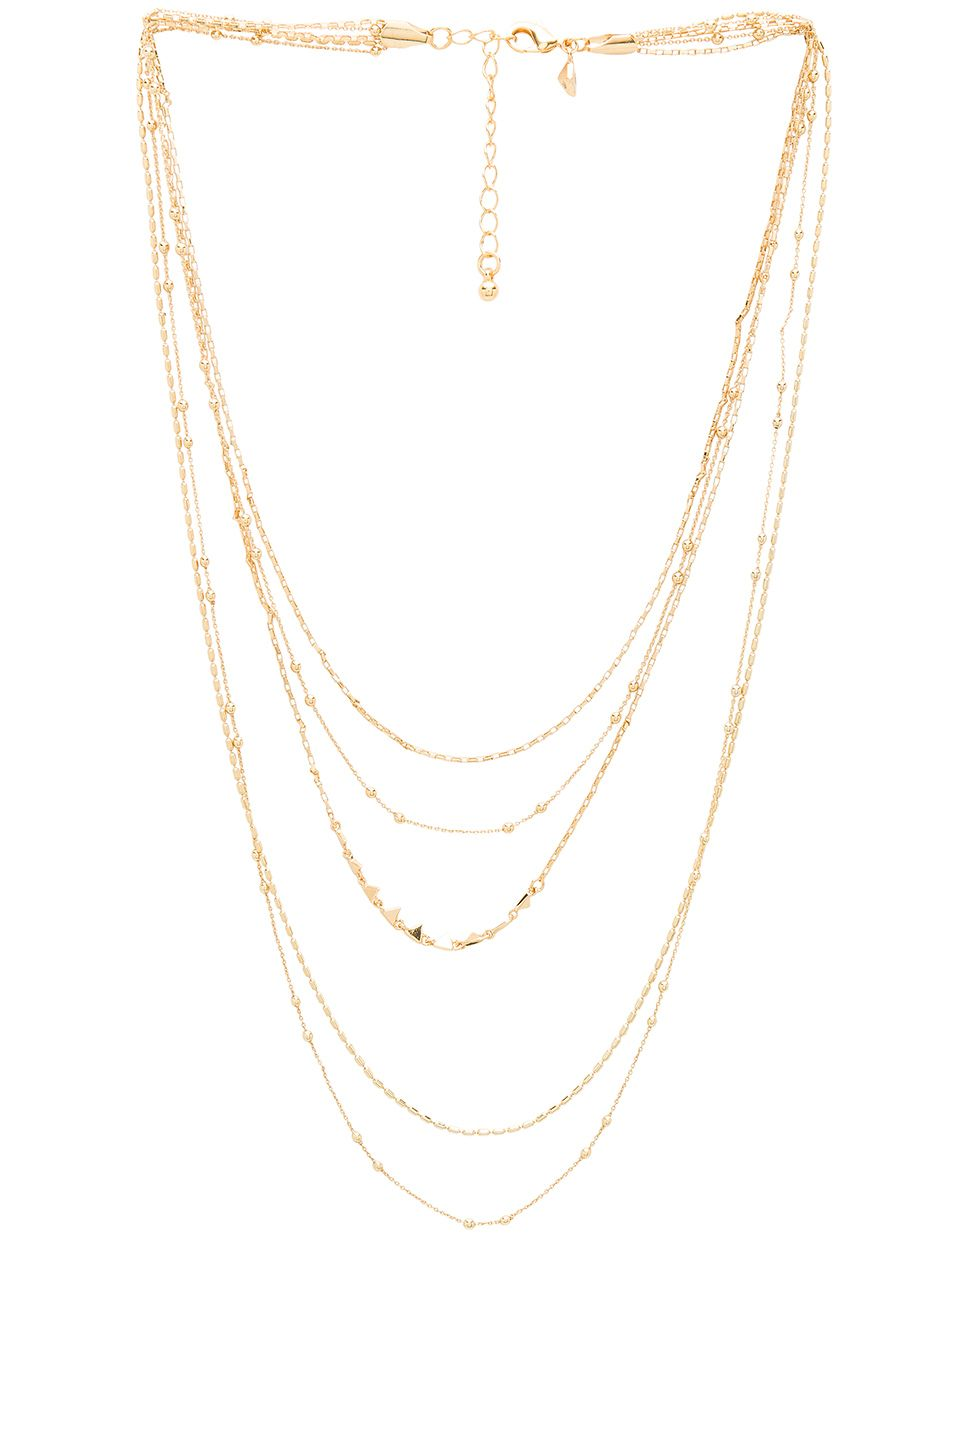 6af3d2ac717 Layered Necklaces Trend - How To Wear Layered Gold Coin Necklaces